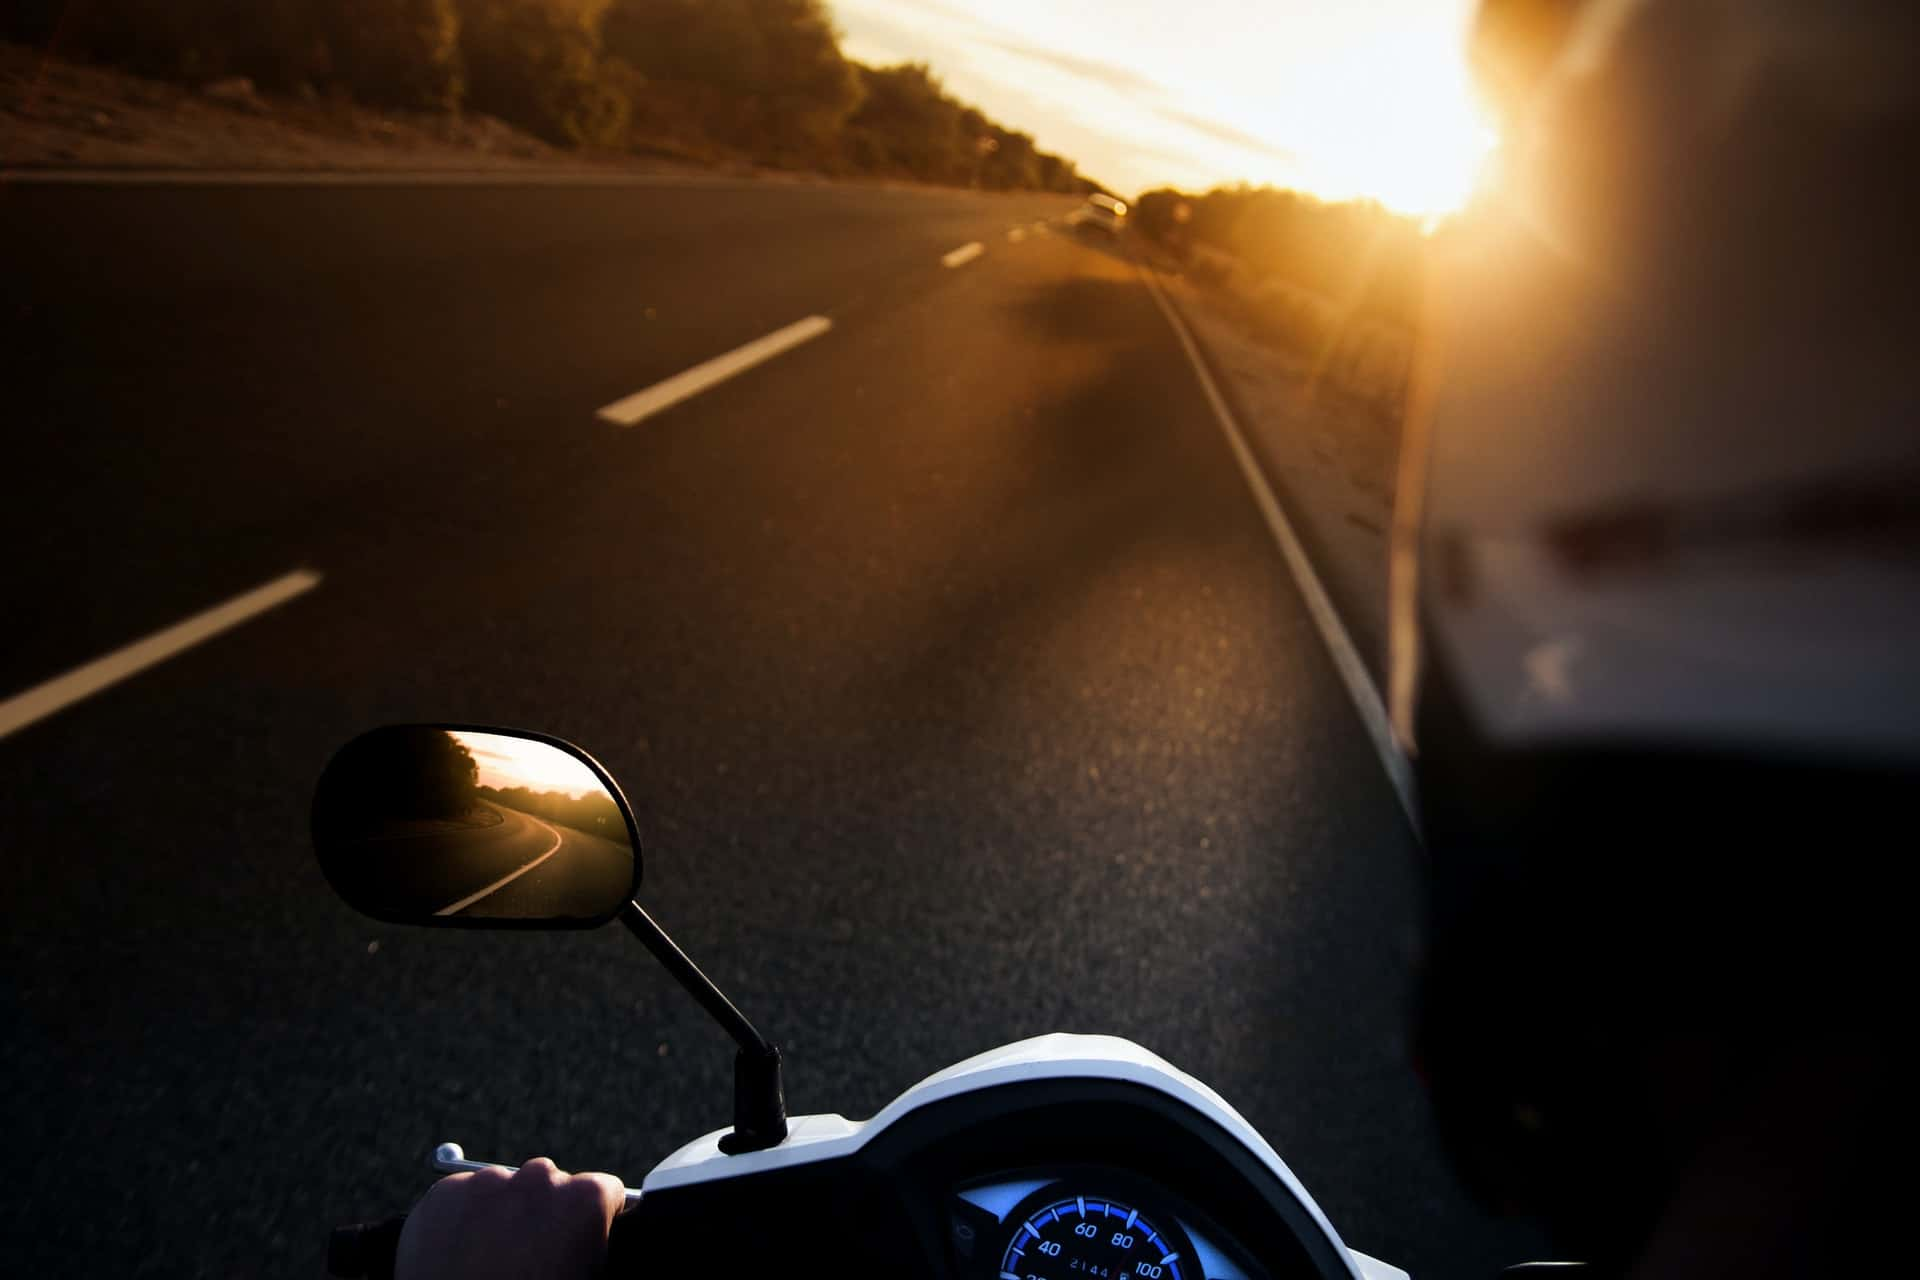 riding-motorcycle-sunlight